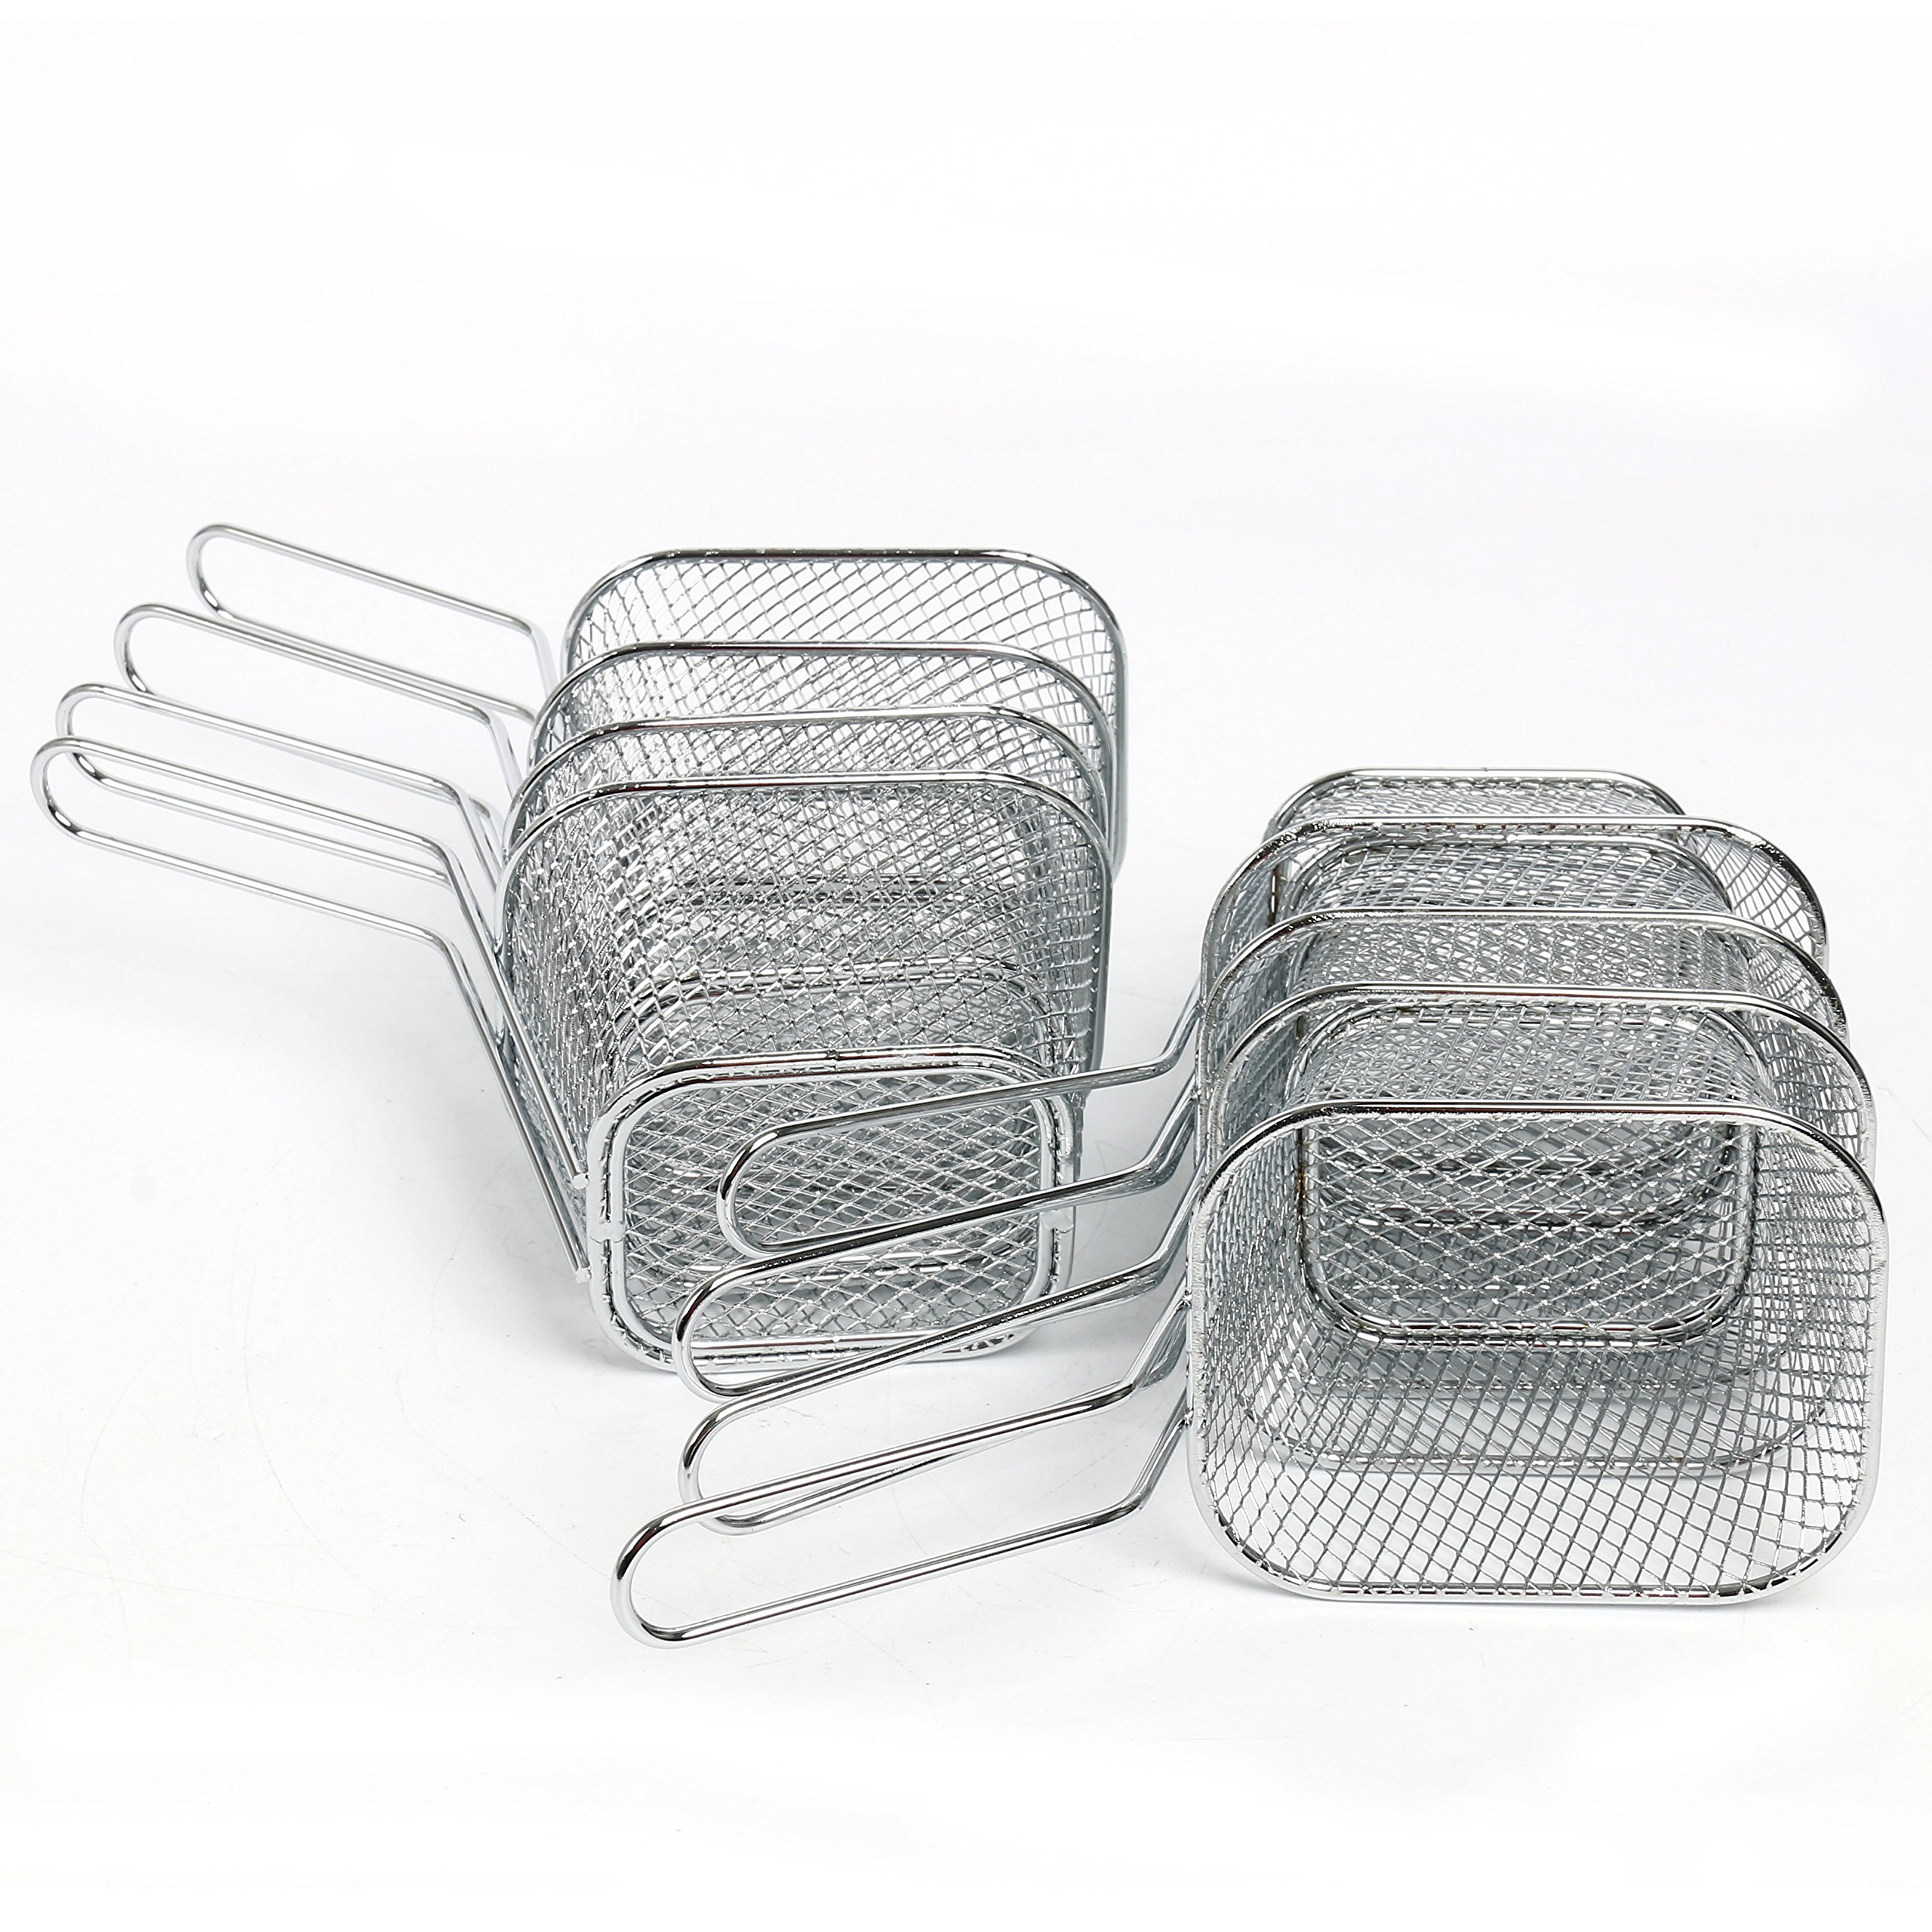 Yaekoo 8Pcs Mini Mesh Wire French Fry Chips Baskets Net Strainer Kitchen Cooking Tools by Yaekoo (Image #6)